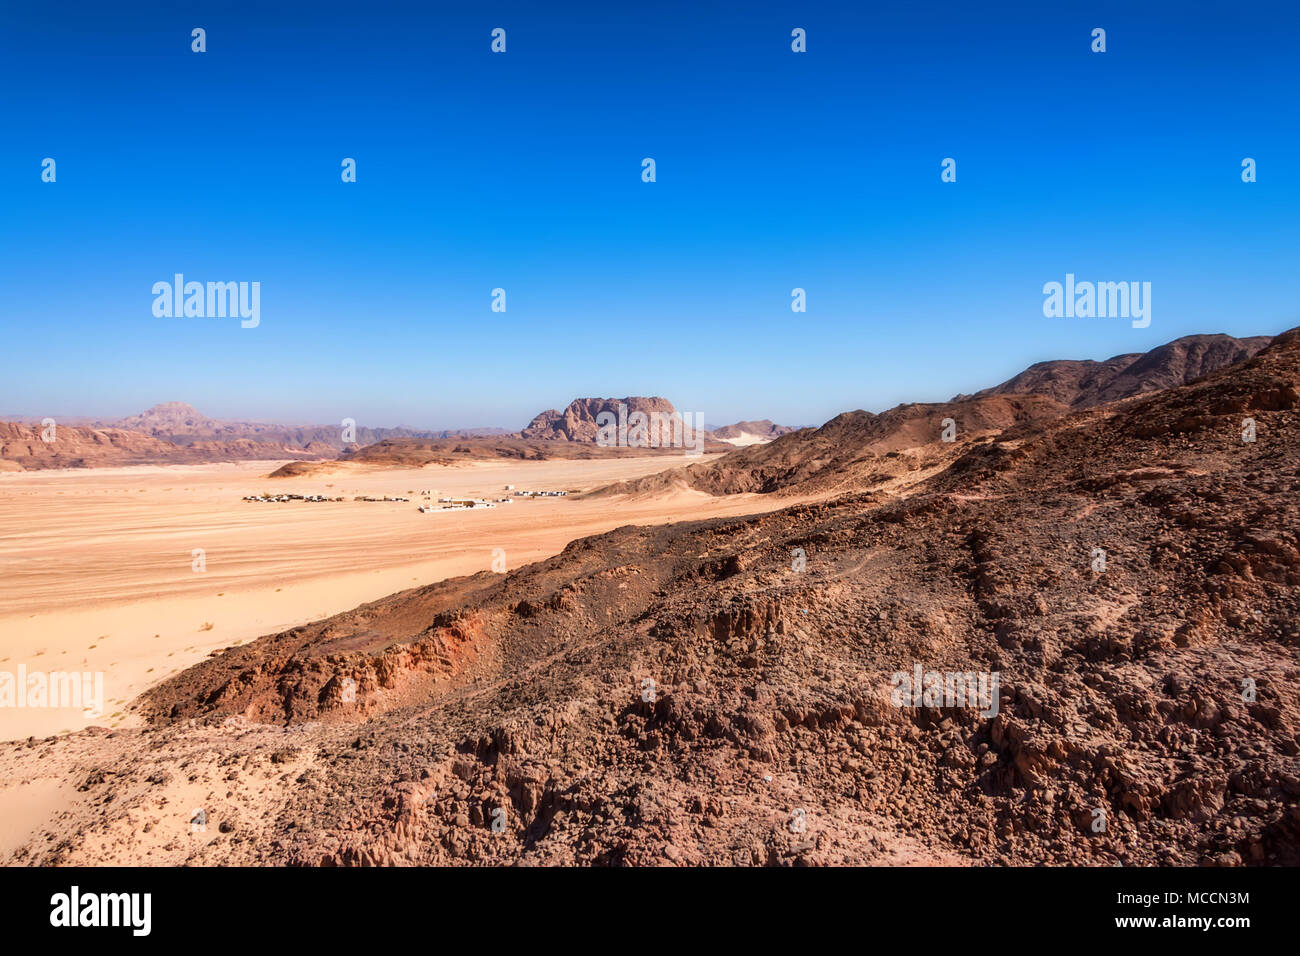 Distant houses in desert on Sinai peninsula - Stock Image